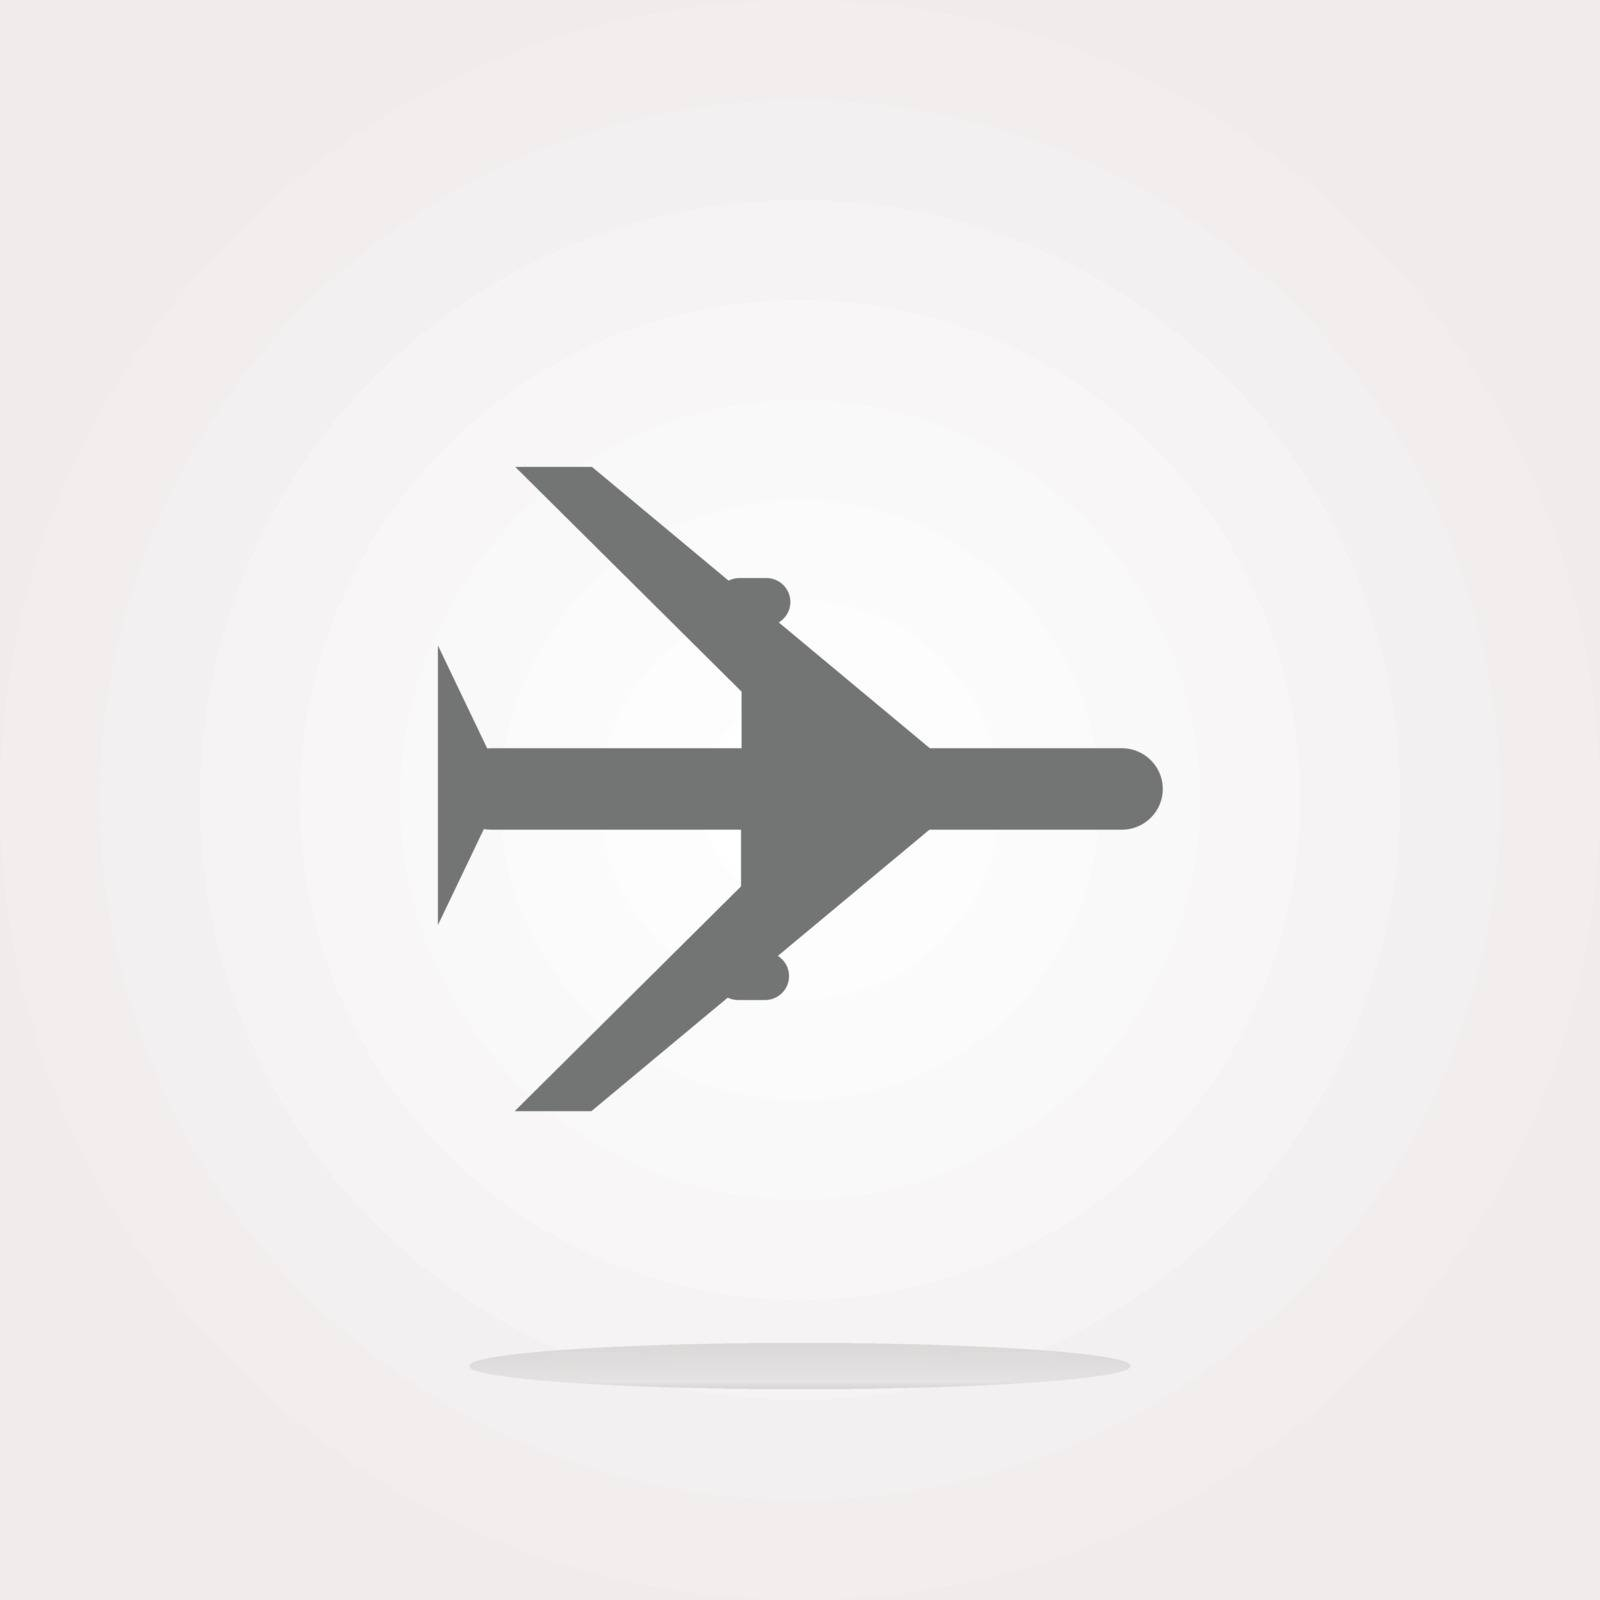 airplane Icon Vector. airplane Icon Art. airplane Icon Picture. airplane Icon Image. airplane Icon logo. airplane Icon Sign. airplane Icon Flat. airplane Icon design. airplane icon app. airplane icon